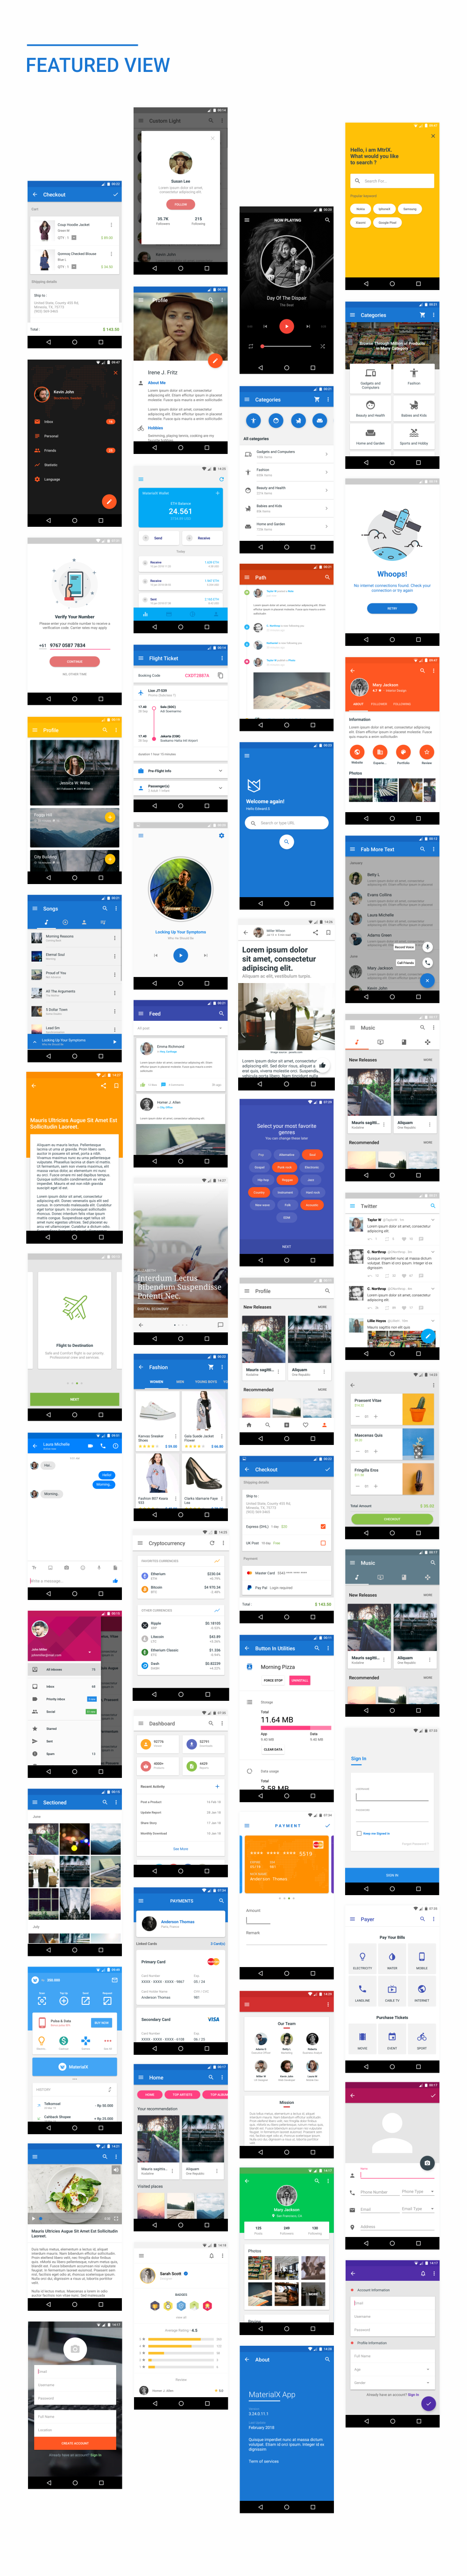 MaterialX - Android Material Design UI Components 2 3